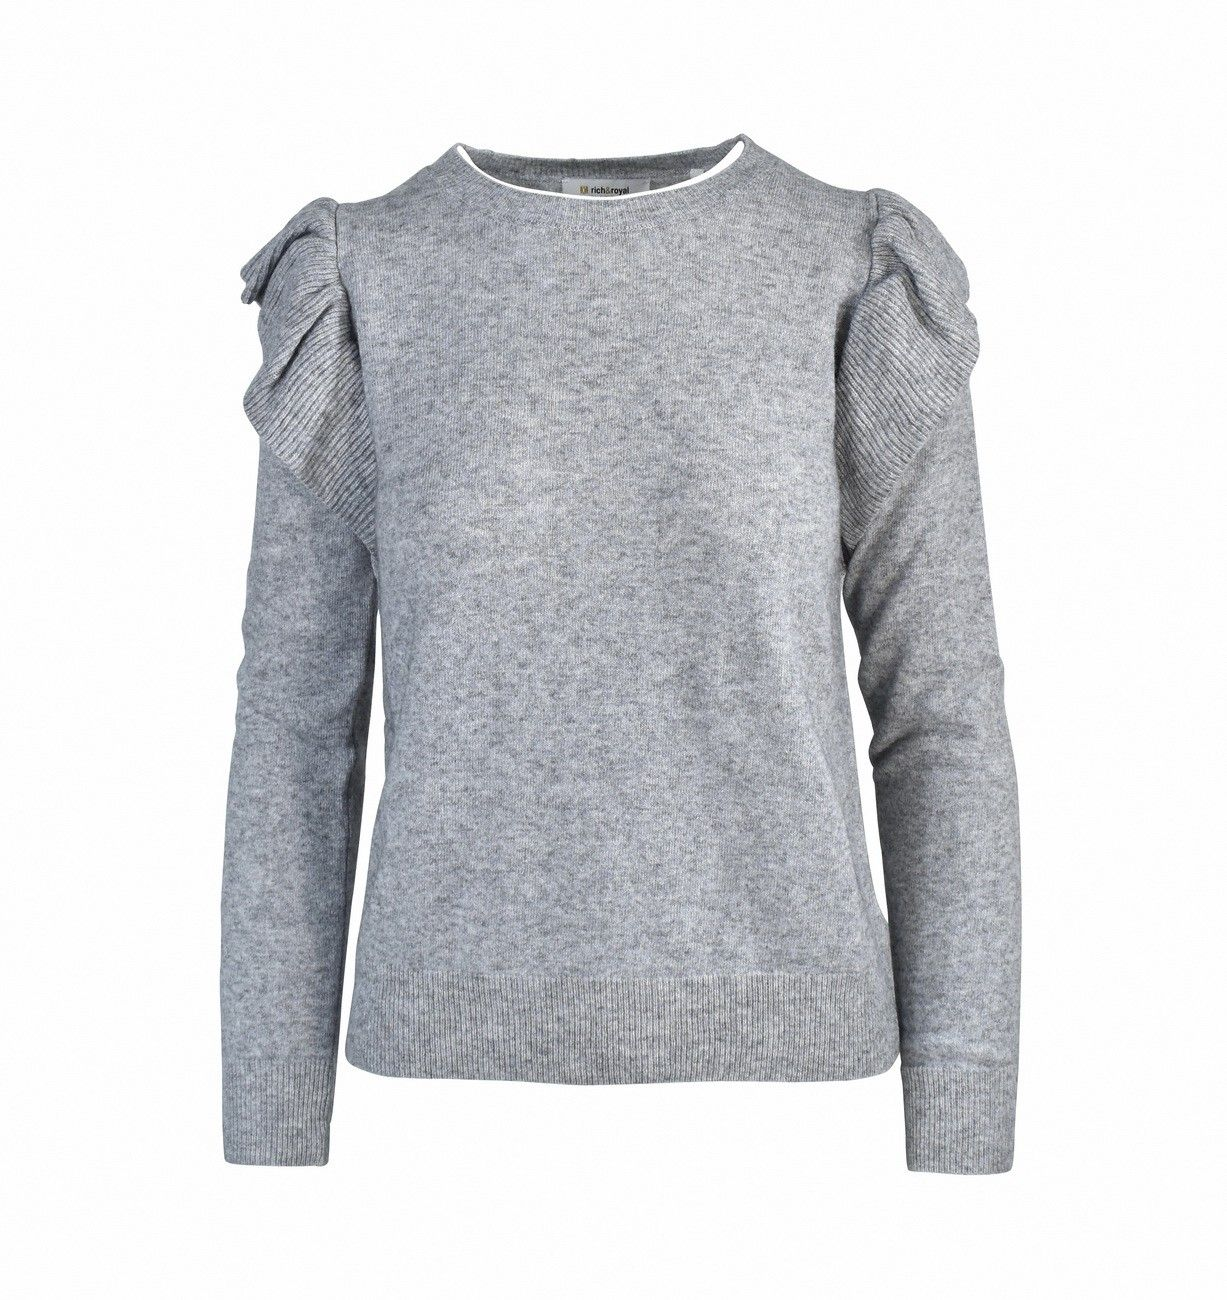 RICH & ROYAL - Damen Pullover - Crew Neck - Grey Mel.